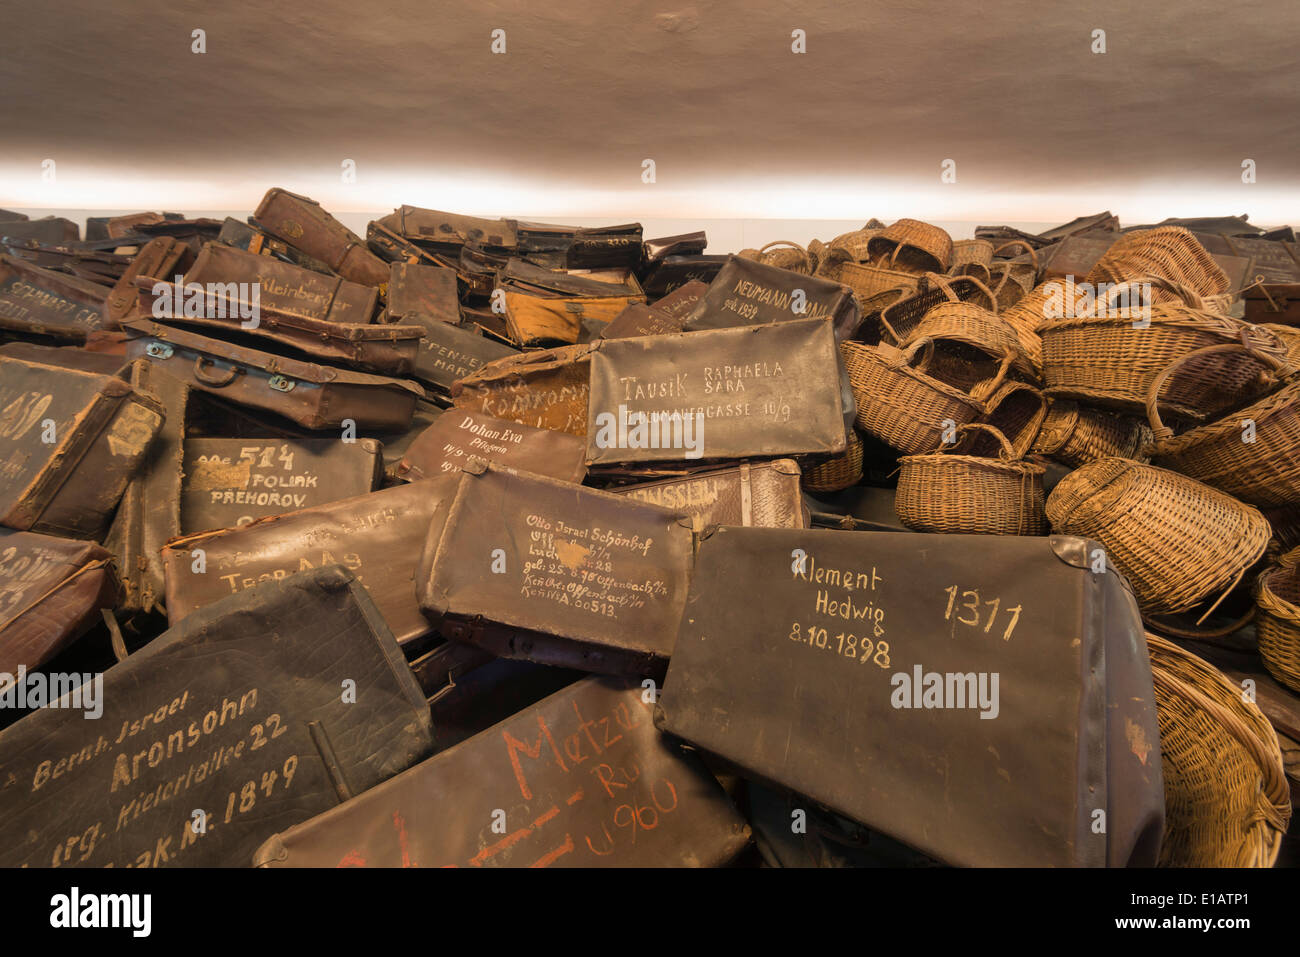 Nazi Museum Stock Photos  Nazi Museum Stock Images Alamy - Concentration camp museums in usa